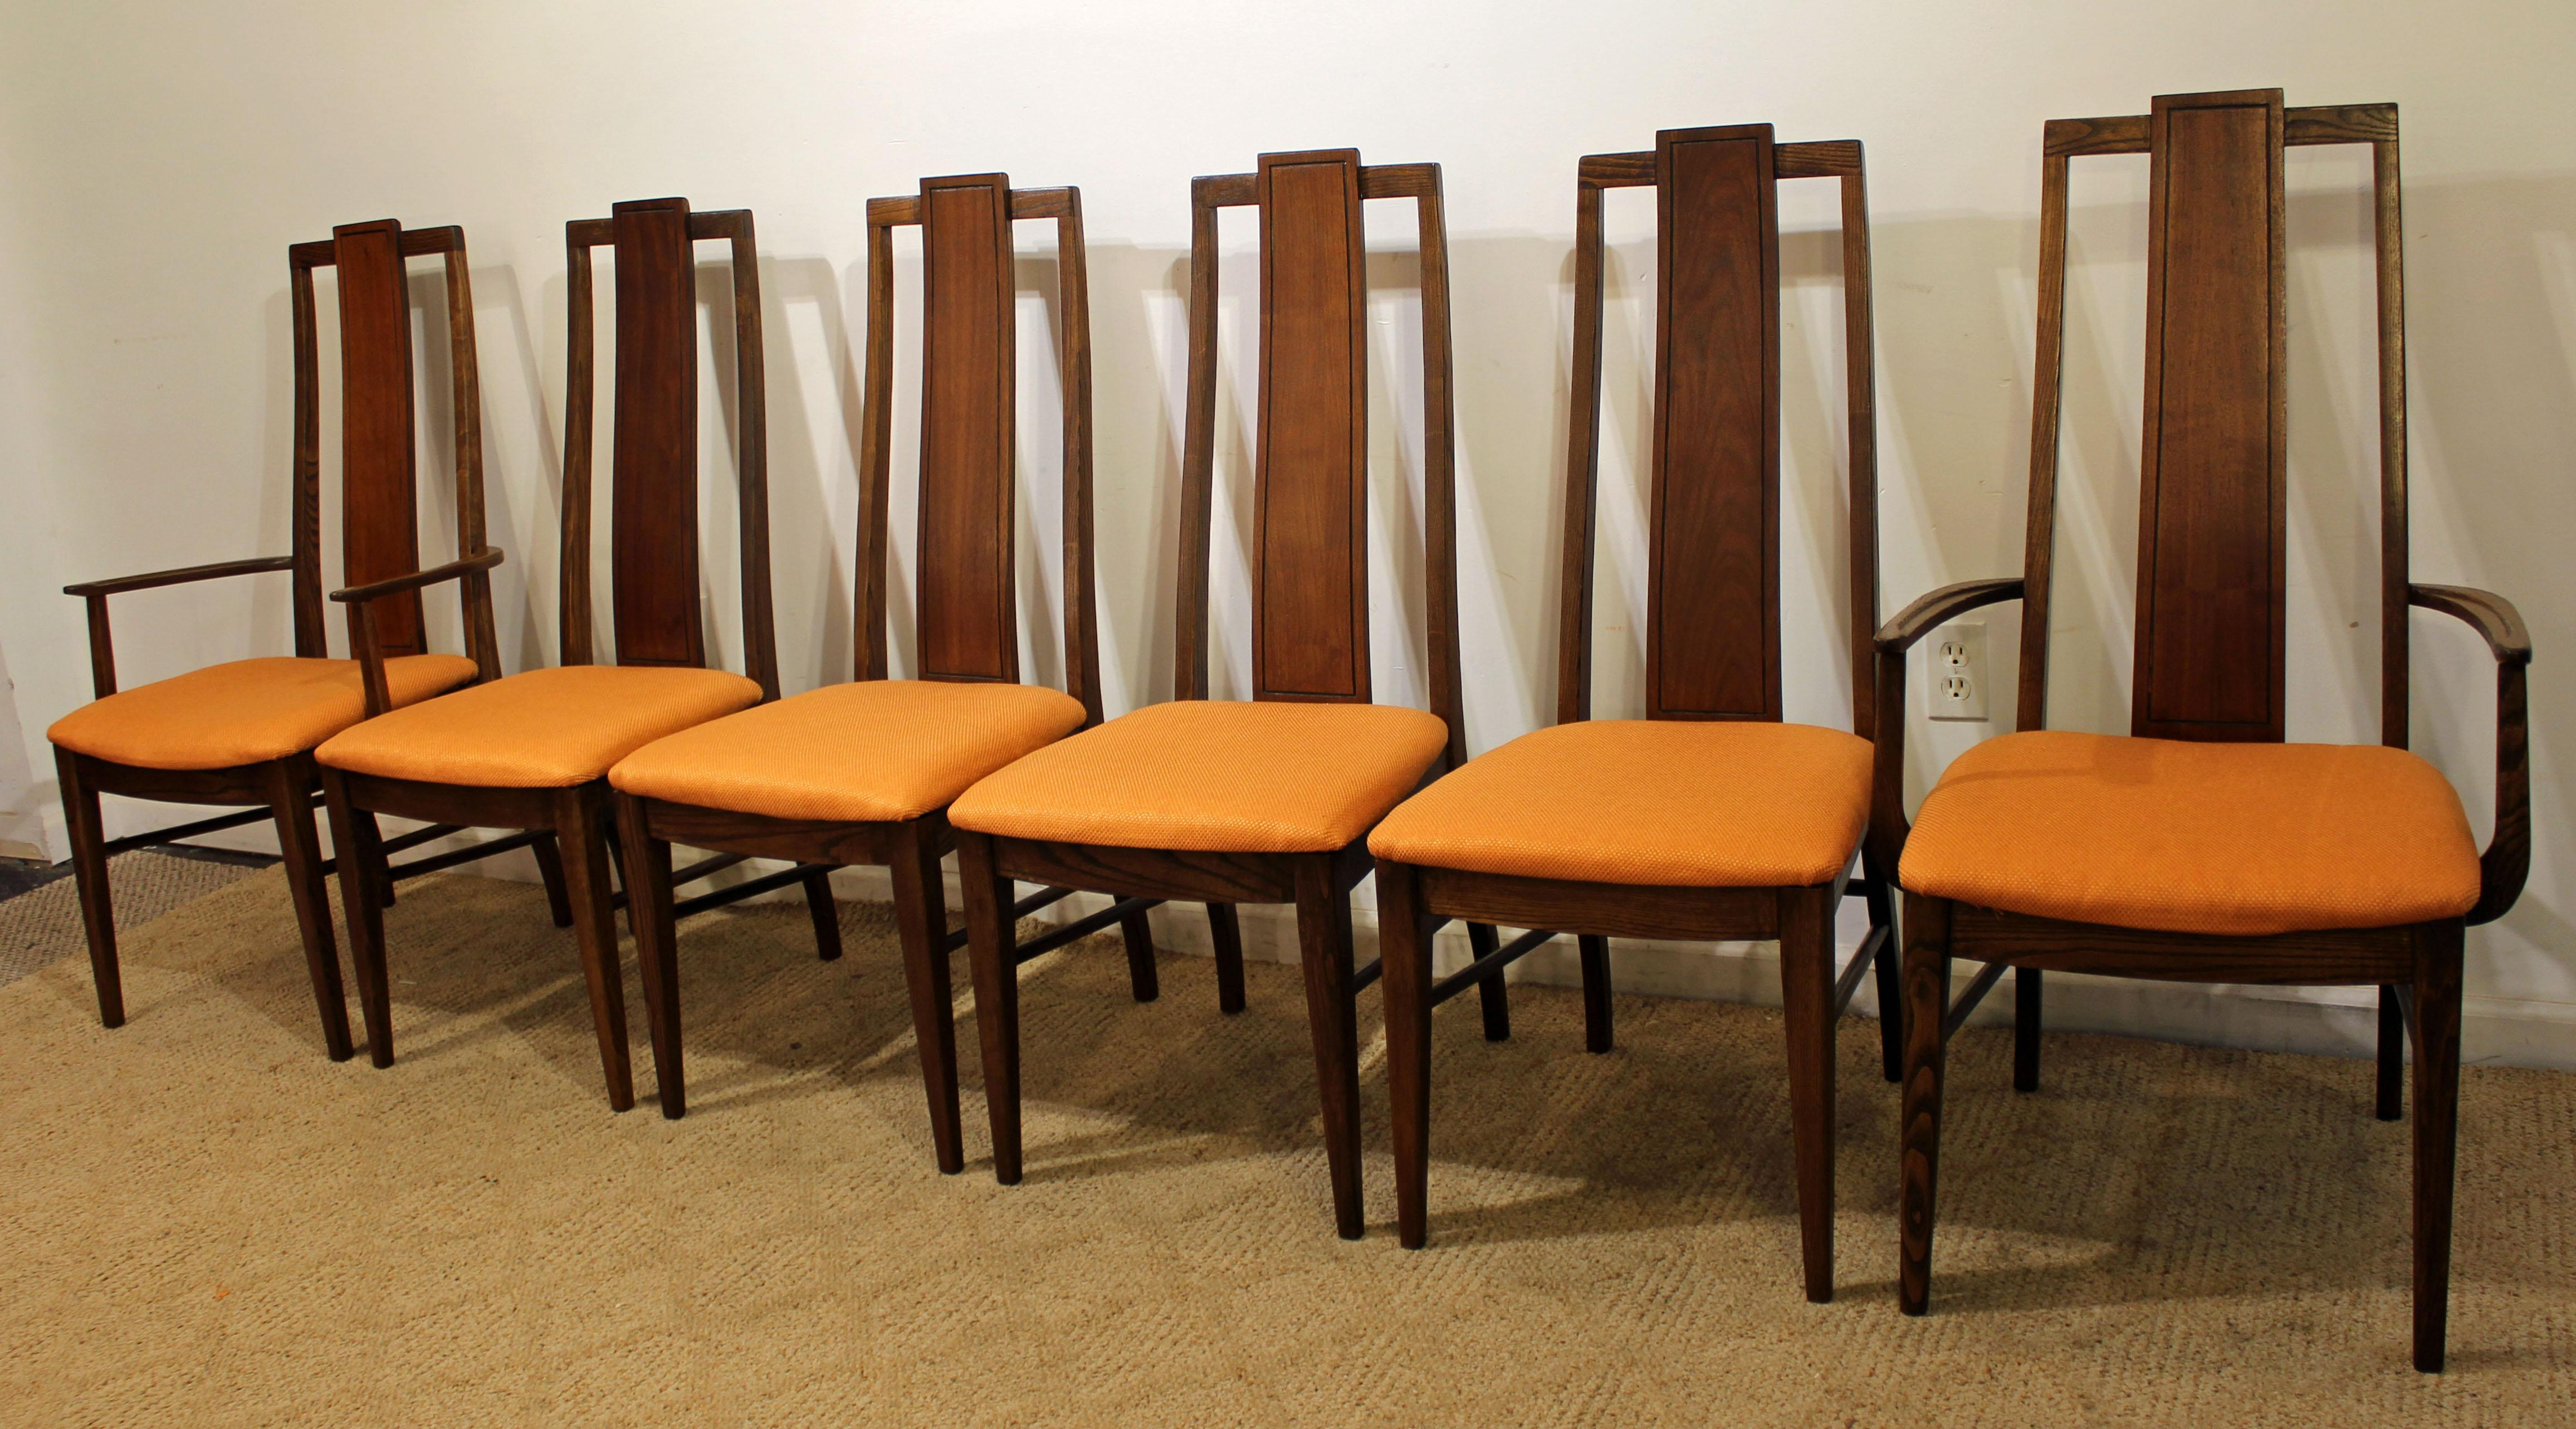 What A Find. Offered Is A Set Of 6 Mid Century Modern Dining Chairs